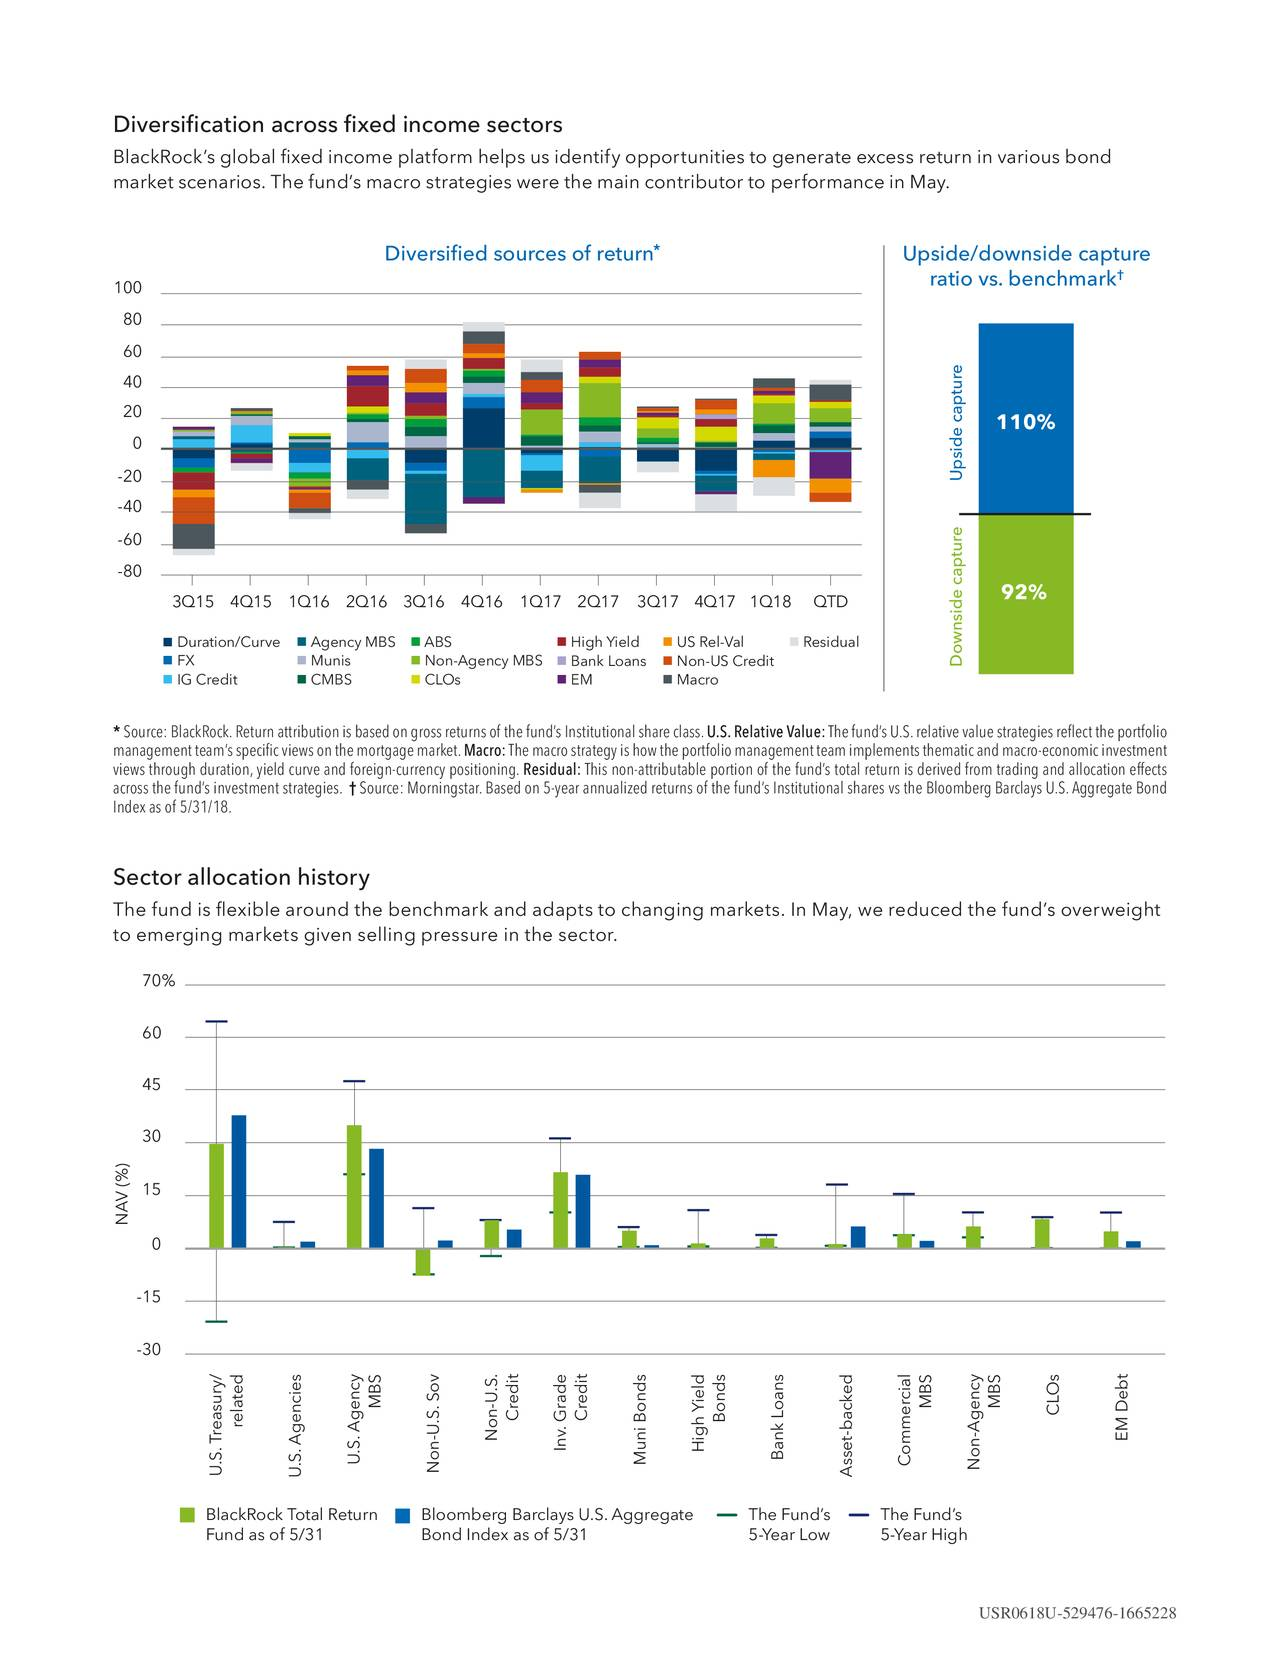 """BlackRock's global fixed income platform helps us identify opportunities to generate excess return in various bond market scenarios. The fund's macro strategies were the main contributor to performance in May. Diversified sources of return * Upside/downside cap.ture † 100 ratio vs. benchmark 80 60 40 20 110% 0 Upside capture -20 -40 -60 -80 92% 3Q15 4Q15 1Q16 2Q16 3Q16 4Q16 1Q17 2Q17 3Q17 4Q17 1Q18 QTD  Duration/Curve Agency MBS  ABS  ƒig"""" …ie†d  ‰S Še†-‹a†  Šesidua†  FX  Munis  Non-Agency MBS  Ban‡ €oans  Non-‰S Credit Downside capture  IG Credit  CMBS  C€'s  ˆM  Macro *Source:BlackRock.Returnattributionisbasedongrossreturnsof thefund'sInstitutionalshareclass.U.S.RelativeValue:Thefund'sU.S.relativevaluestrategiesreflecttheportfolio managementteam'sspecificviewsonthemortgagemarket.Macro:Themacrostrategyishowtheportfoliomanagementteamimplementsthematicandmacro-economicinvestment viewsthroughduration,yieldcurveandforeign-currencypositioning. Residual:Thisnon-attributableportionof thefund'stotalreturnisderivedfromtradingandallocationeffects acrossthefund'sinvestmentstrategies. † Source:Morningstar.Basedon5-yearannualizedreturnsof thefund'sInstitutionalsharesvstheBloombergBarclaysU.S.AggregateBond Indexasof 5/31/18. Sector allocation history The fund is flexible around the benchmark and adapts to changing markets. In May, we reduced the fund's overweight to emerging markets given selling pressure in the sector. """"'% '' """"5 3' 15 NAV (%) ' -15 -3' MBS MBS MBS related ƒred""""t ƒred""""t Bonds ƒˆ‰s Non-U.S. ŠM ‹ebt In€. 'rade …""""g† ‡""""elBank ˆoans U.S.TreasU.S. Agenc""""esgenNon-U.S. So€ Mun"""" Bonds Asset-backedrc""""Non-Agency BlackRock Total Return Bloomberg Barclays U.S. Aggregate T†e FundŒs T†e FundŒs Fund as of 5/31 Bond Index as of 5/31 5-‡ear ˆoŽ 5-‡ear …""""g† USR0618U-529476-1665228"""